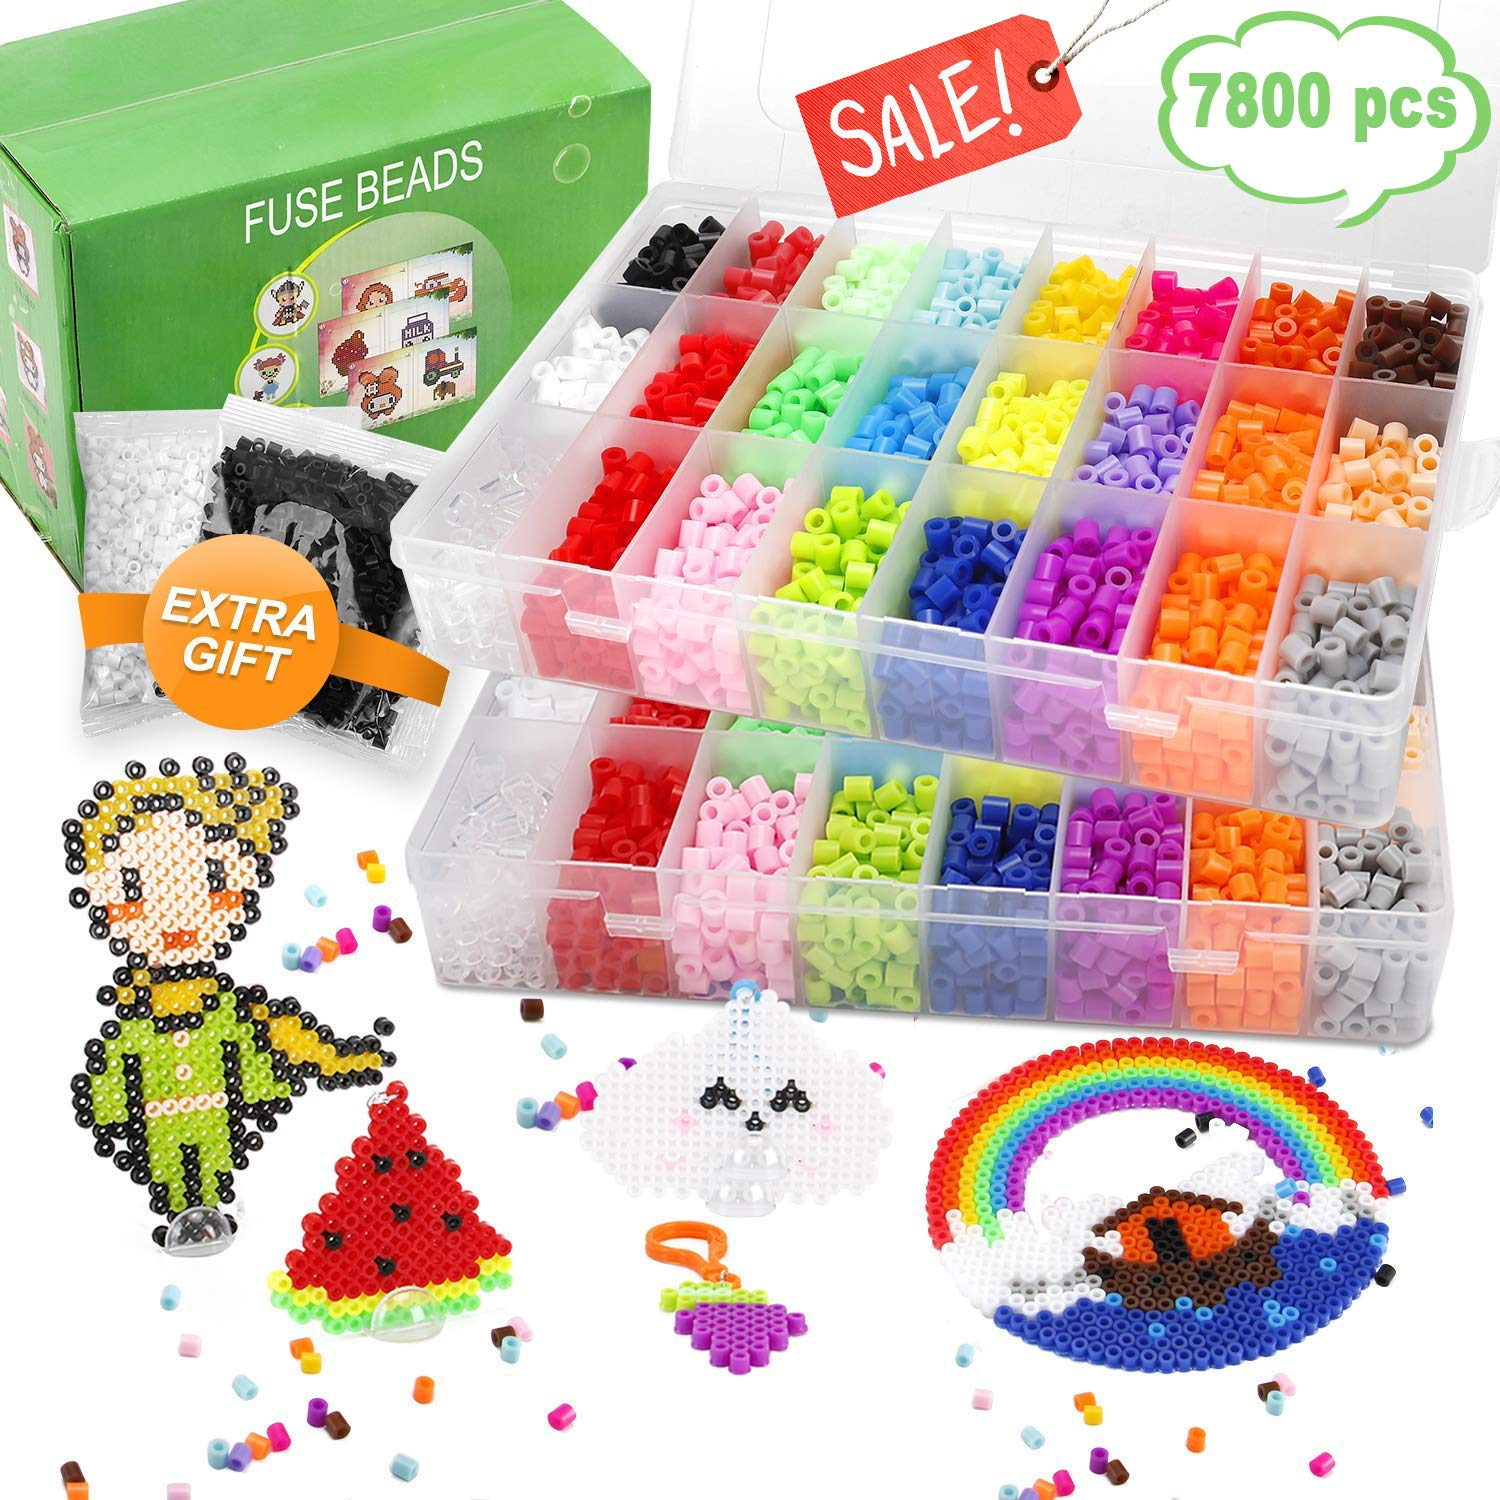 Fuse Beads, 7800 pcs Fuse Beads Kit 24 Colors 5MM for Kids, Including 5 Ironing Paper,50 Patterns, 2 Pegboards, Tweezers, Keychain, Rings, Perler Beads Compatible Kit by Farielyn-X